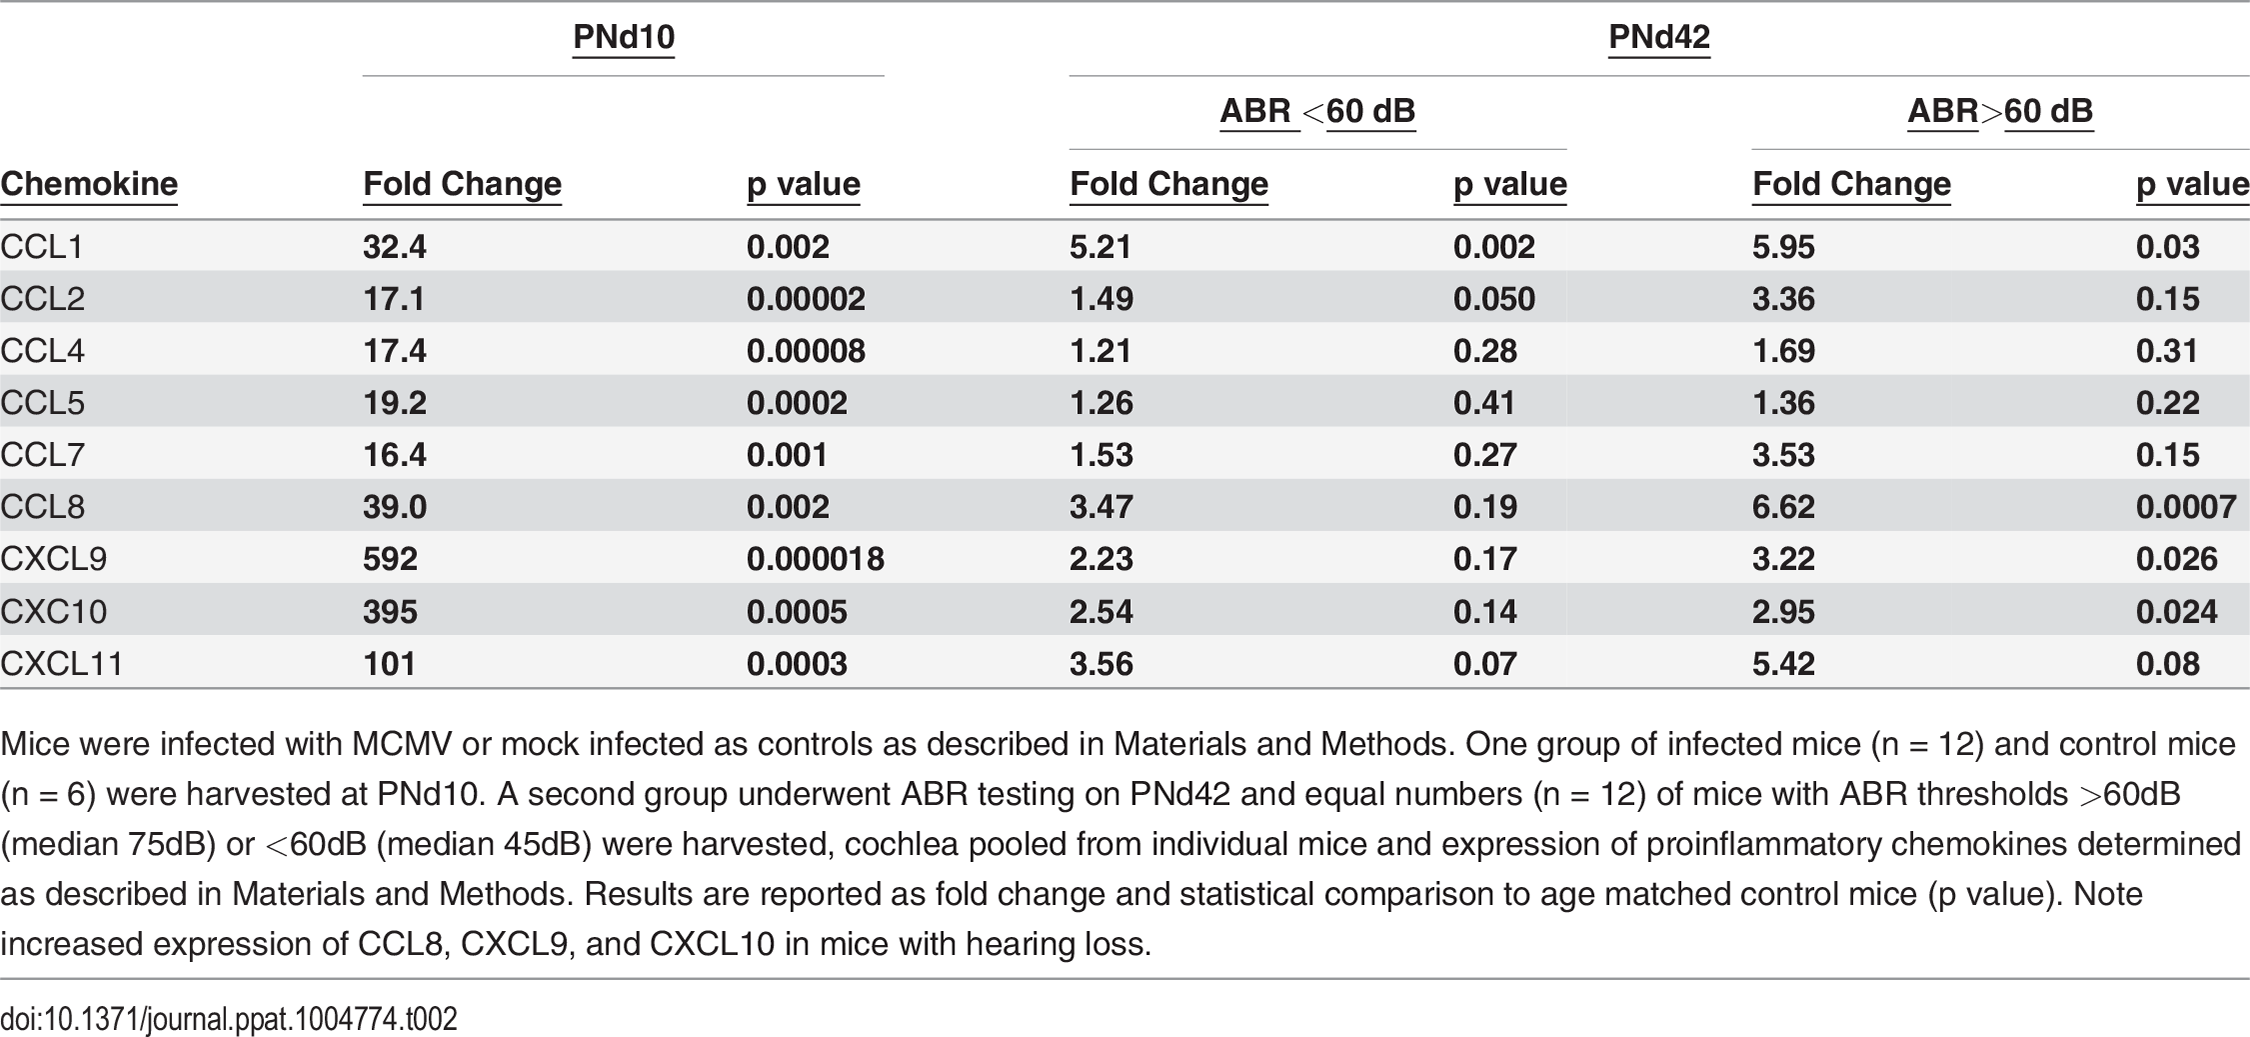 Persistent expression of proinflammatory chemokines in cochlea of mice with ABR thresholds >60dB.